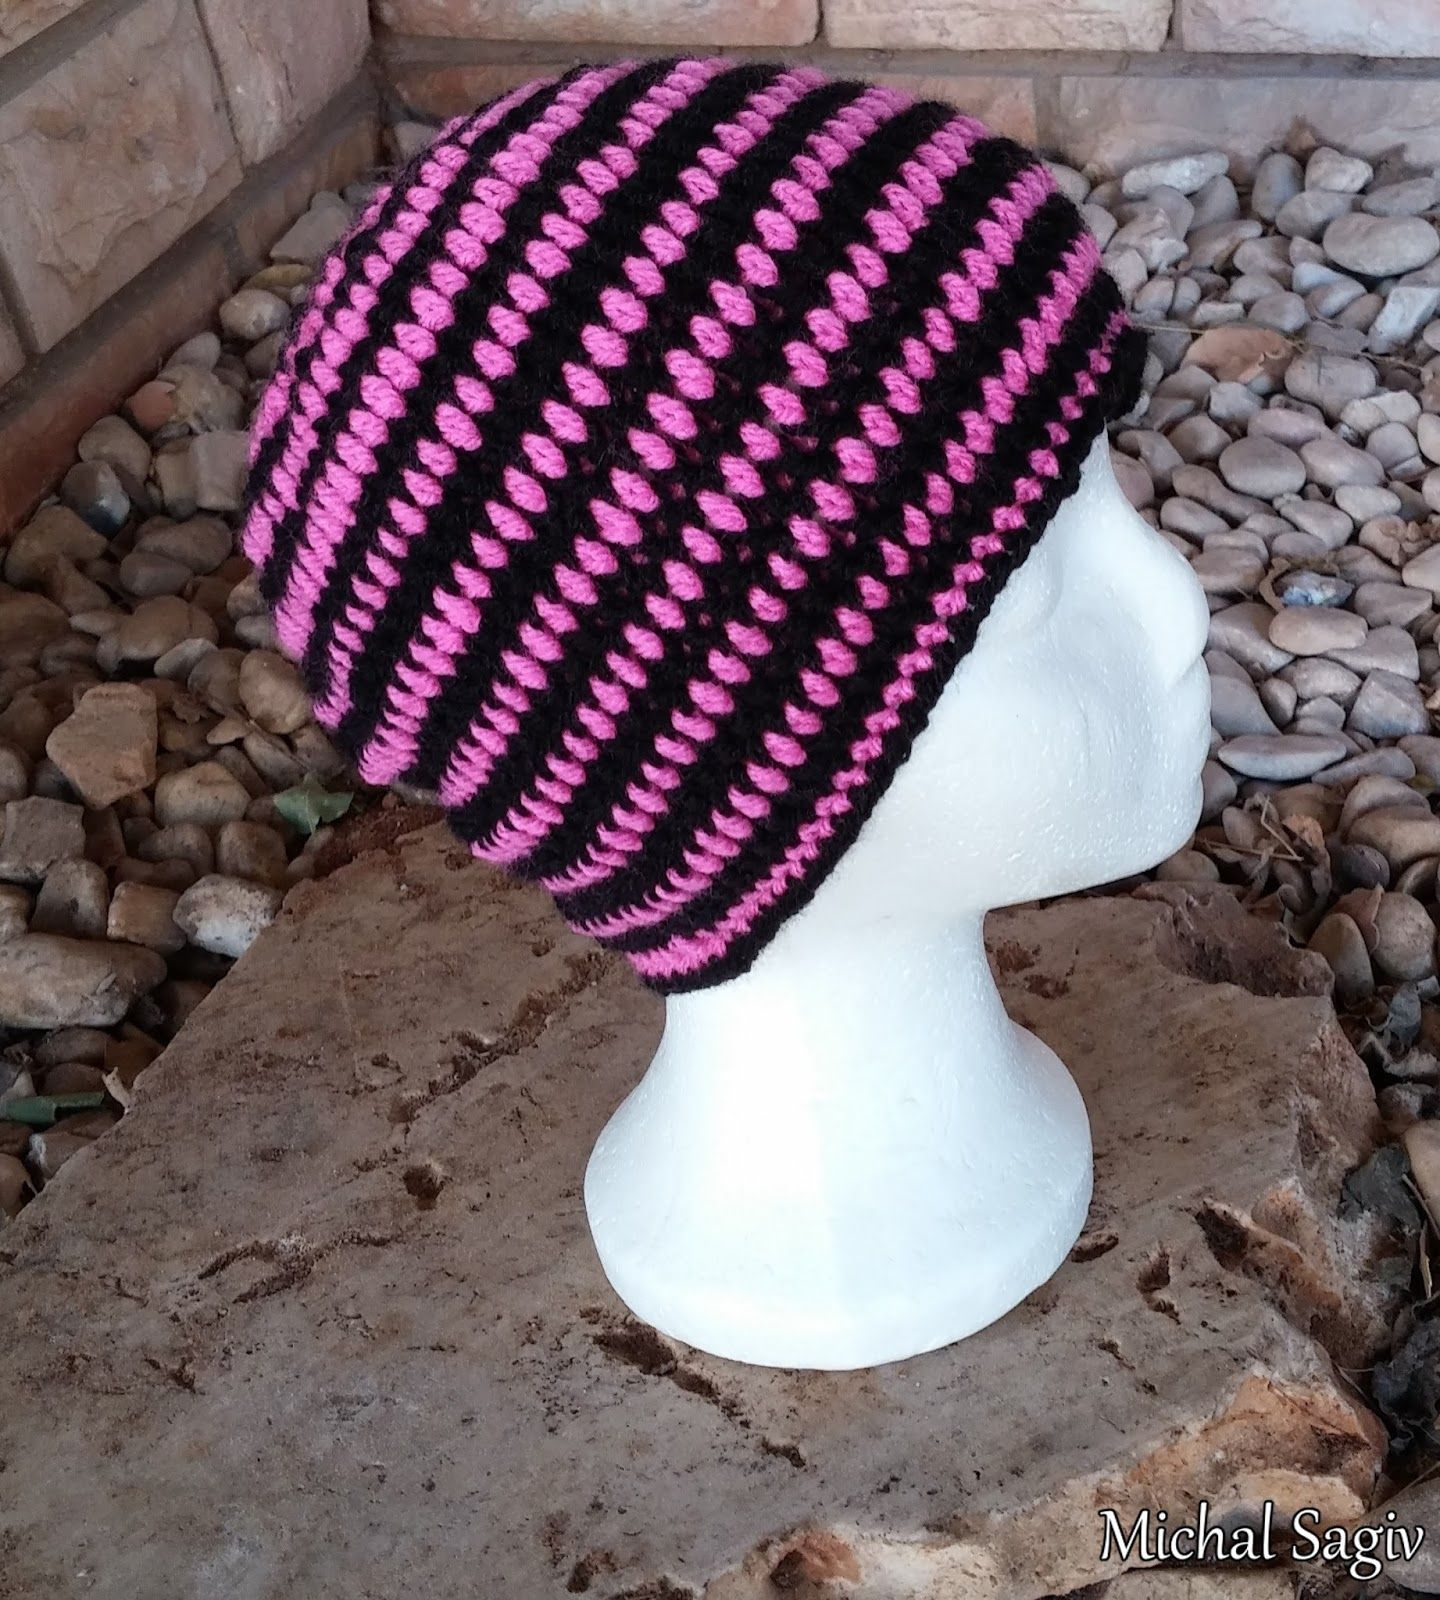 Crochet mind crochet reversible spiral beehive unisex hat pink crochet mind crochet reversible spiral beehive unisex hat pink black side made by michal sagiv link to video tutorial baditri Image collections